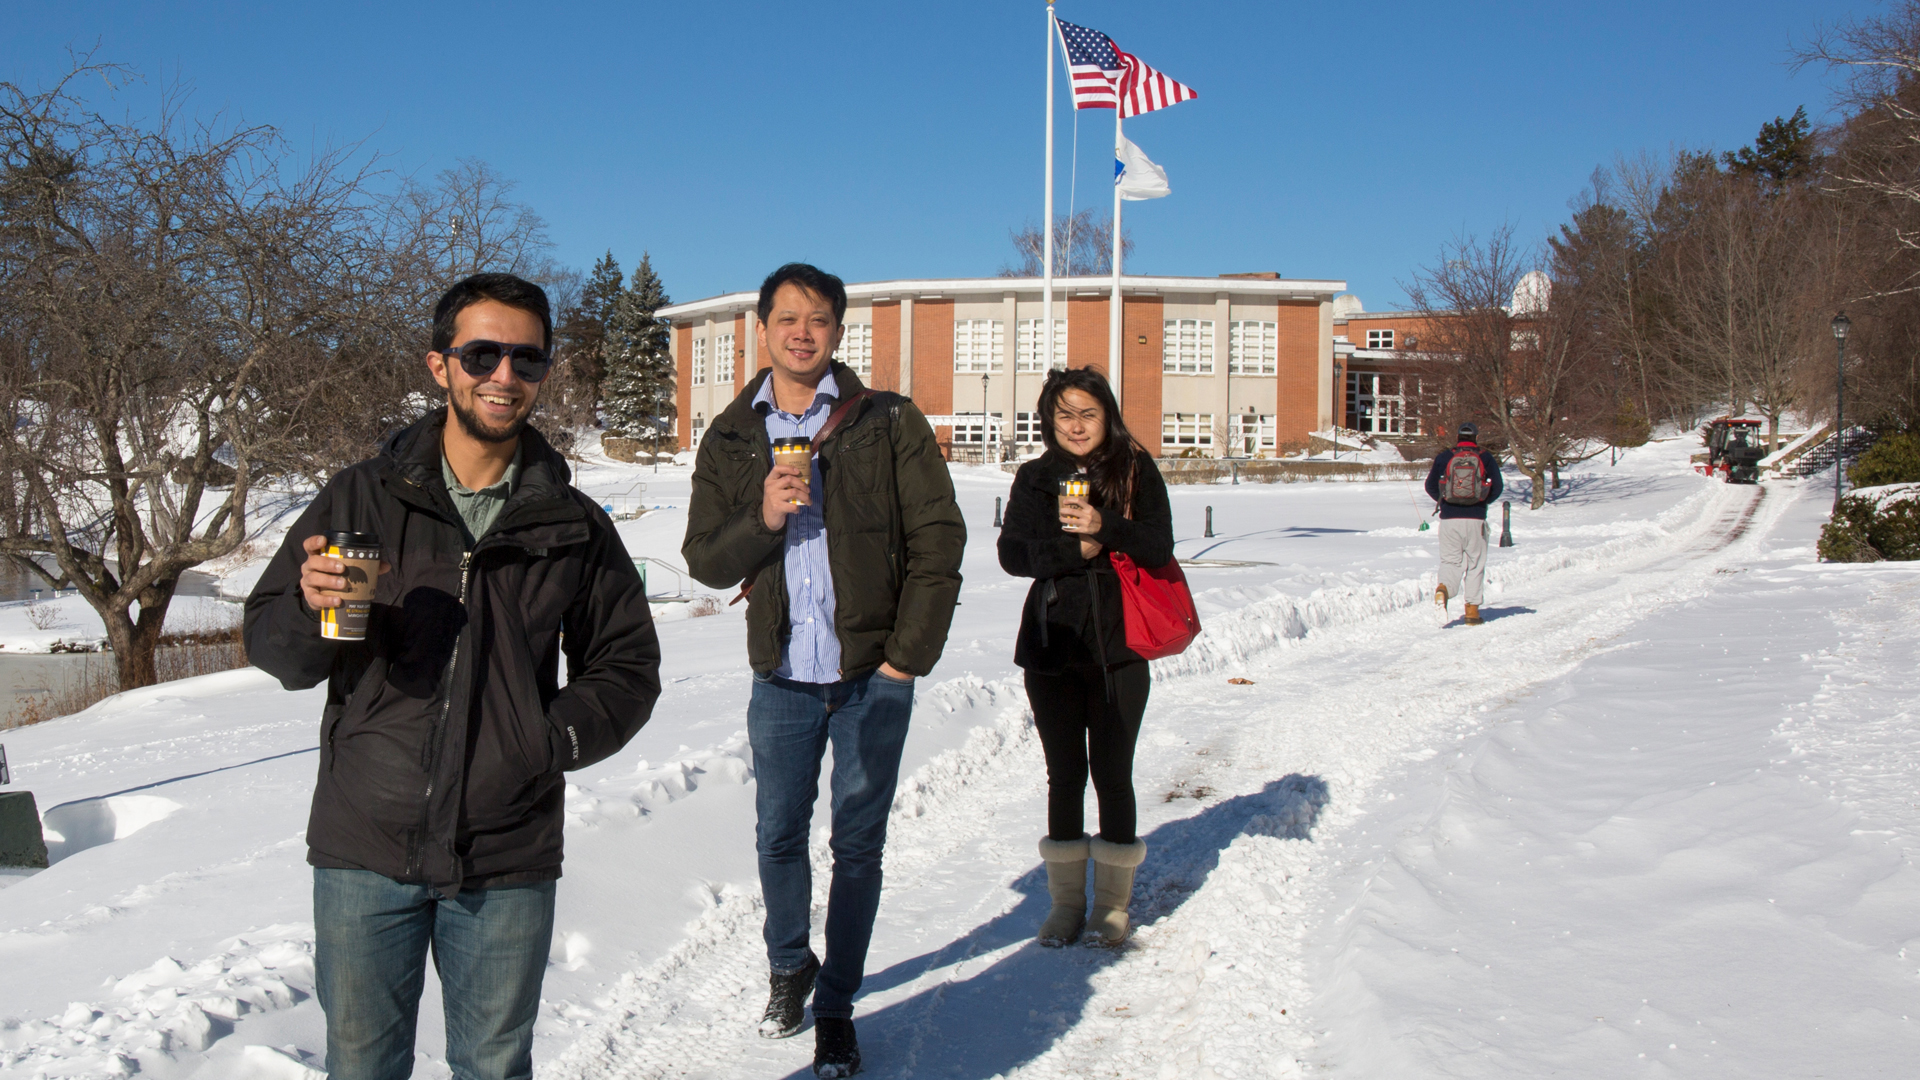 Three Endicott students walking from the academic center in the snow